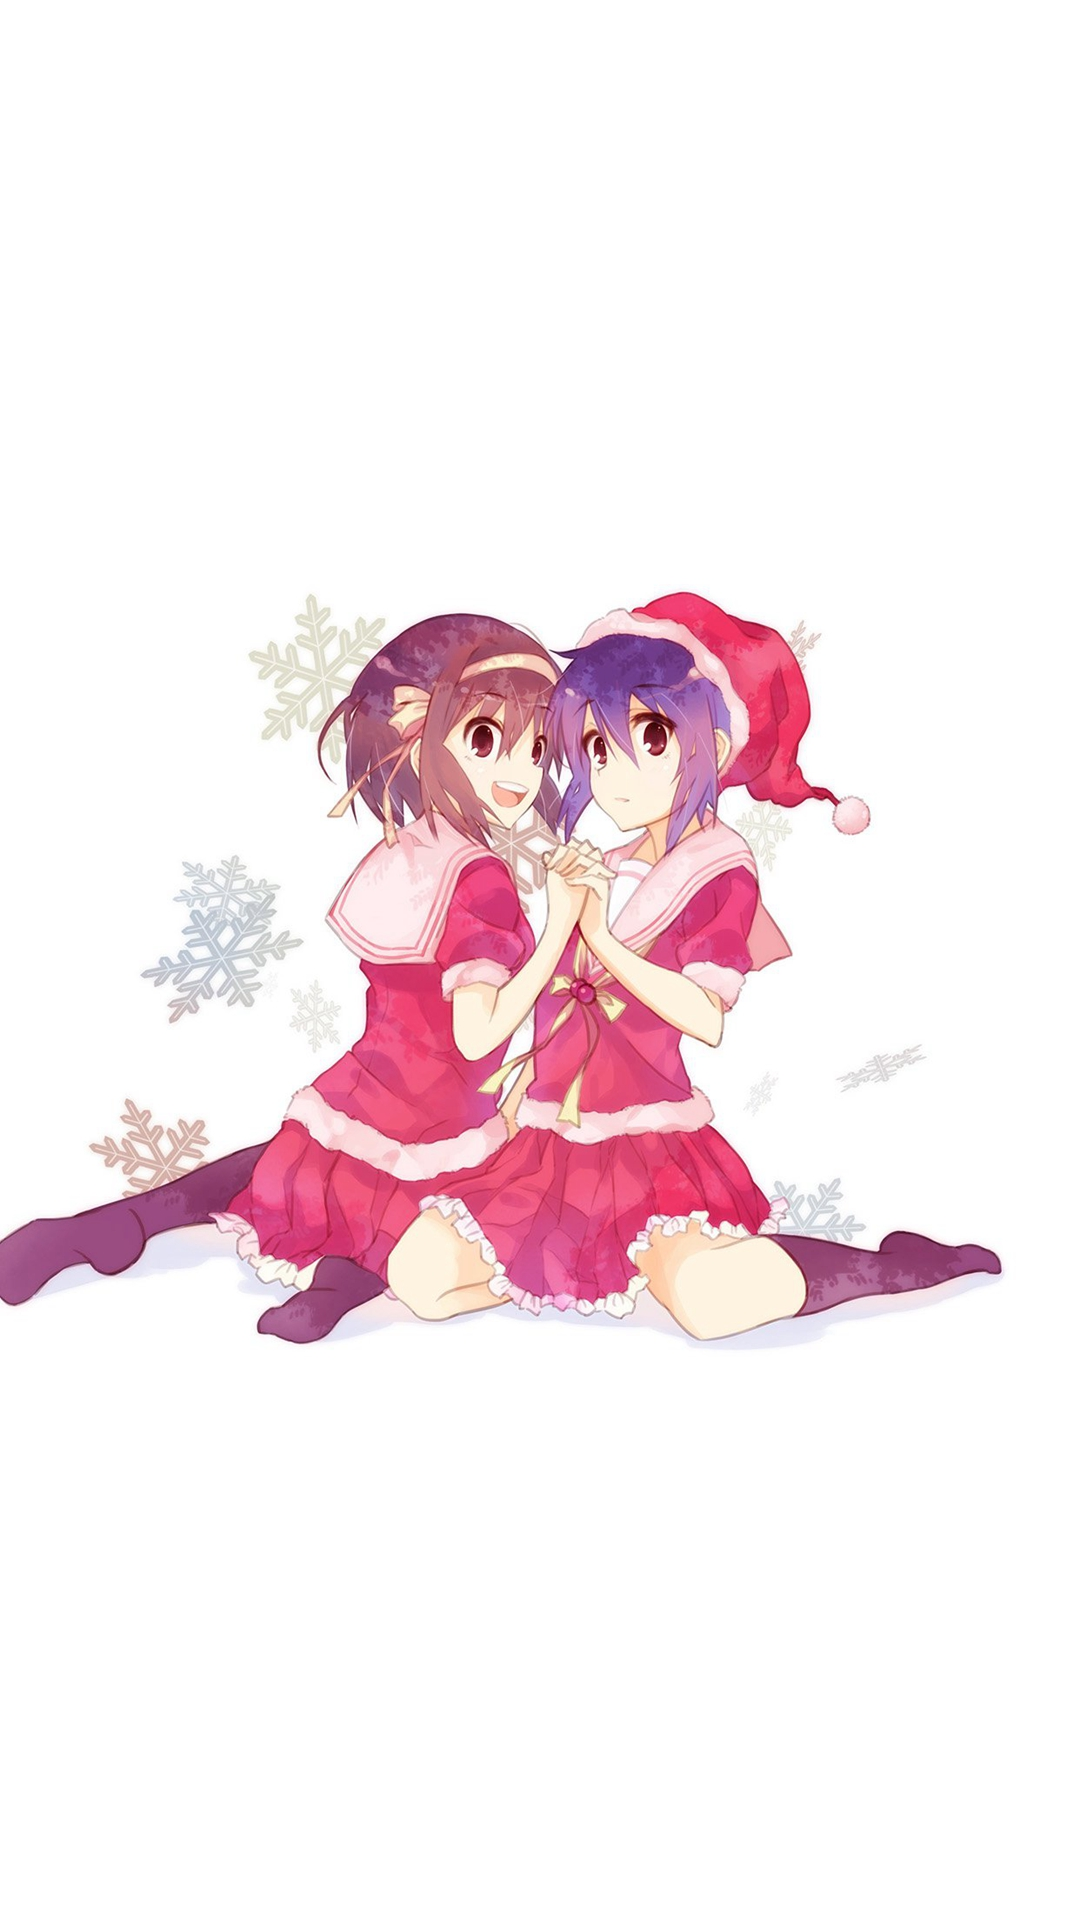 Cute Anime Chirstmas Art Illust Girls Wallpapers For Iphone